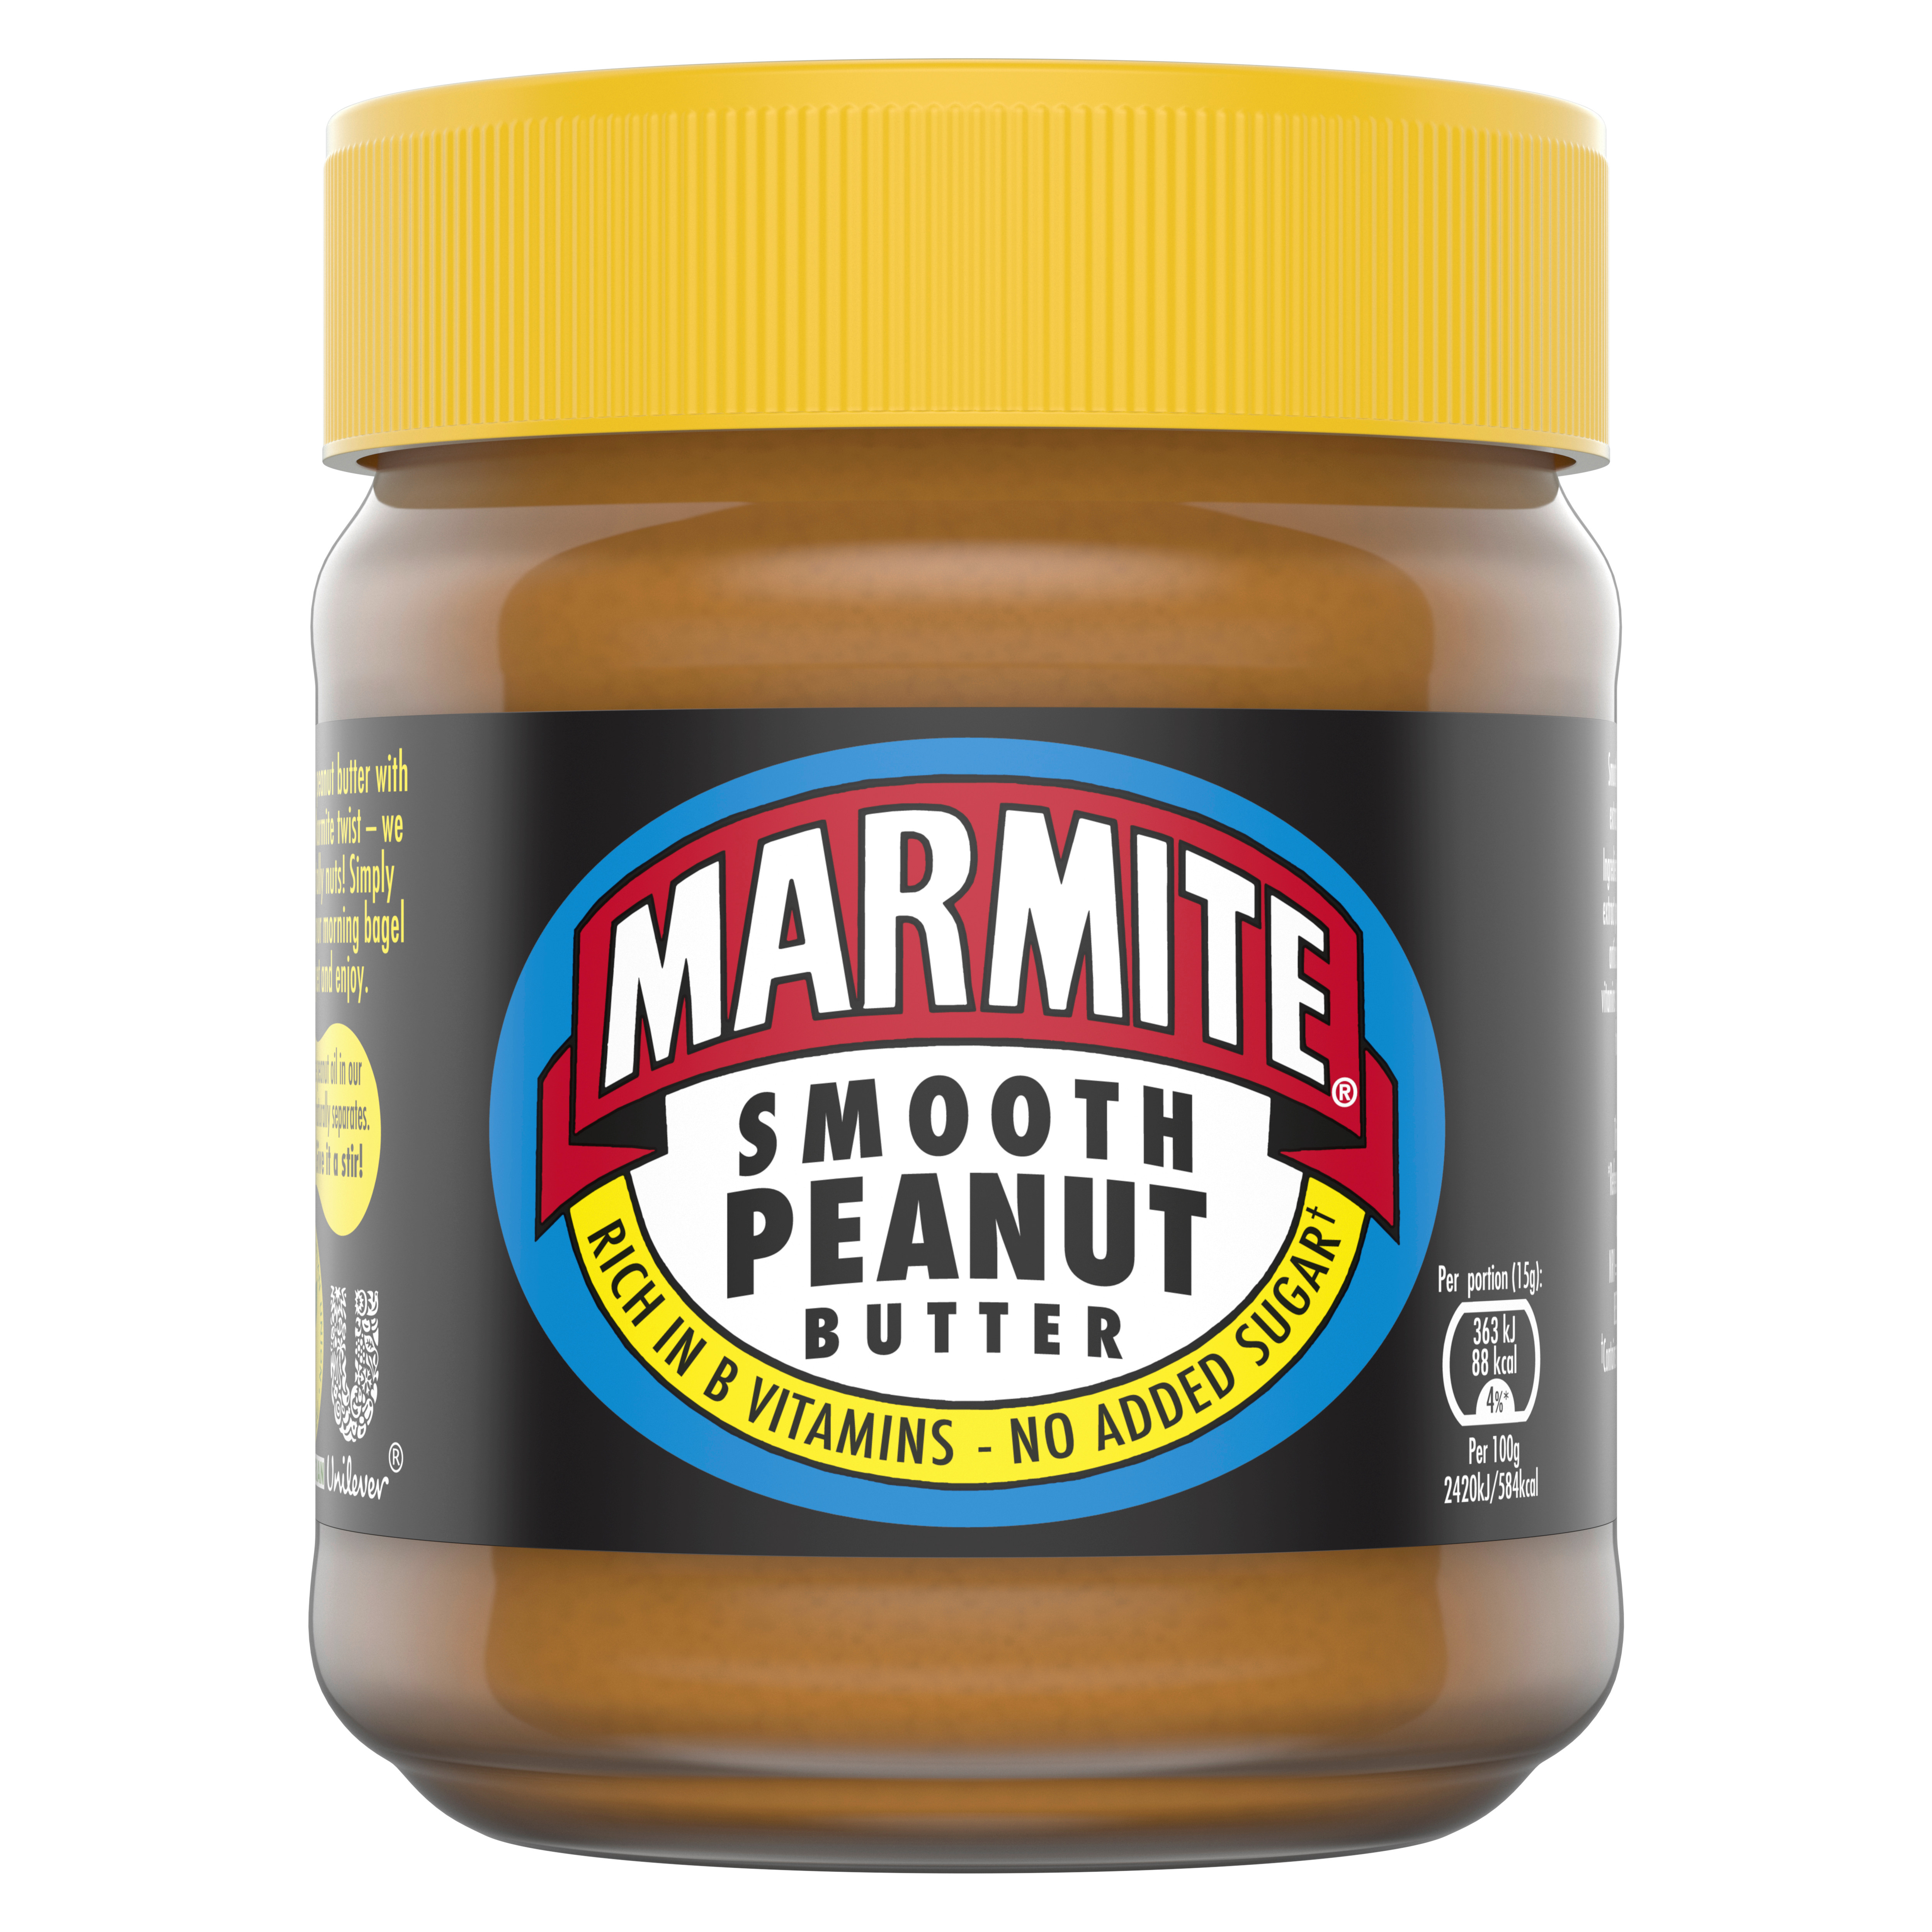 Marmite has combined salty spread with peanut butter